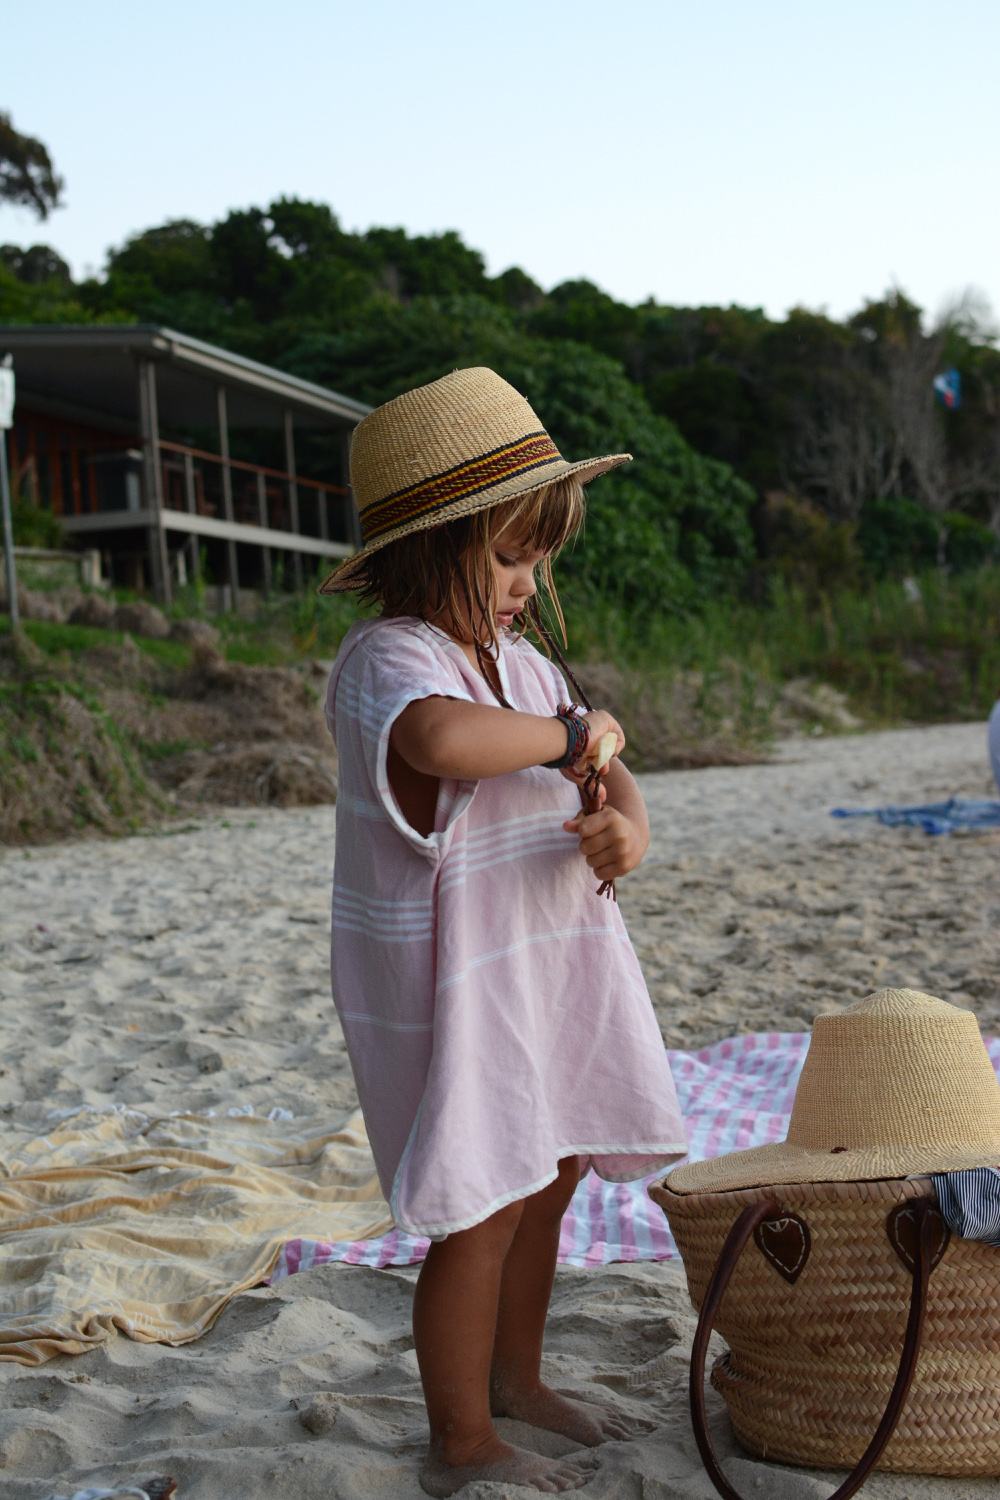 Byron bay guide for families